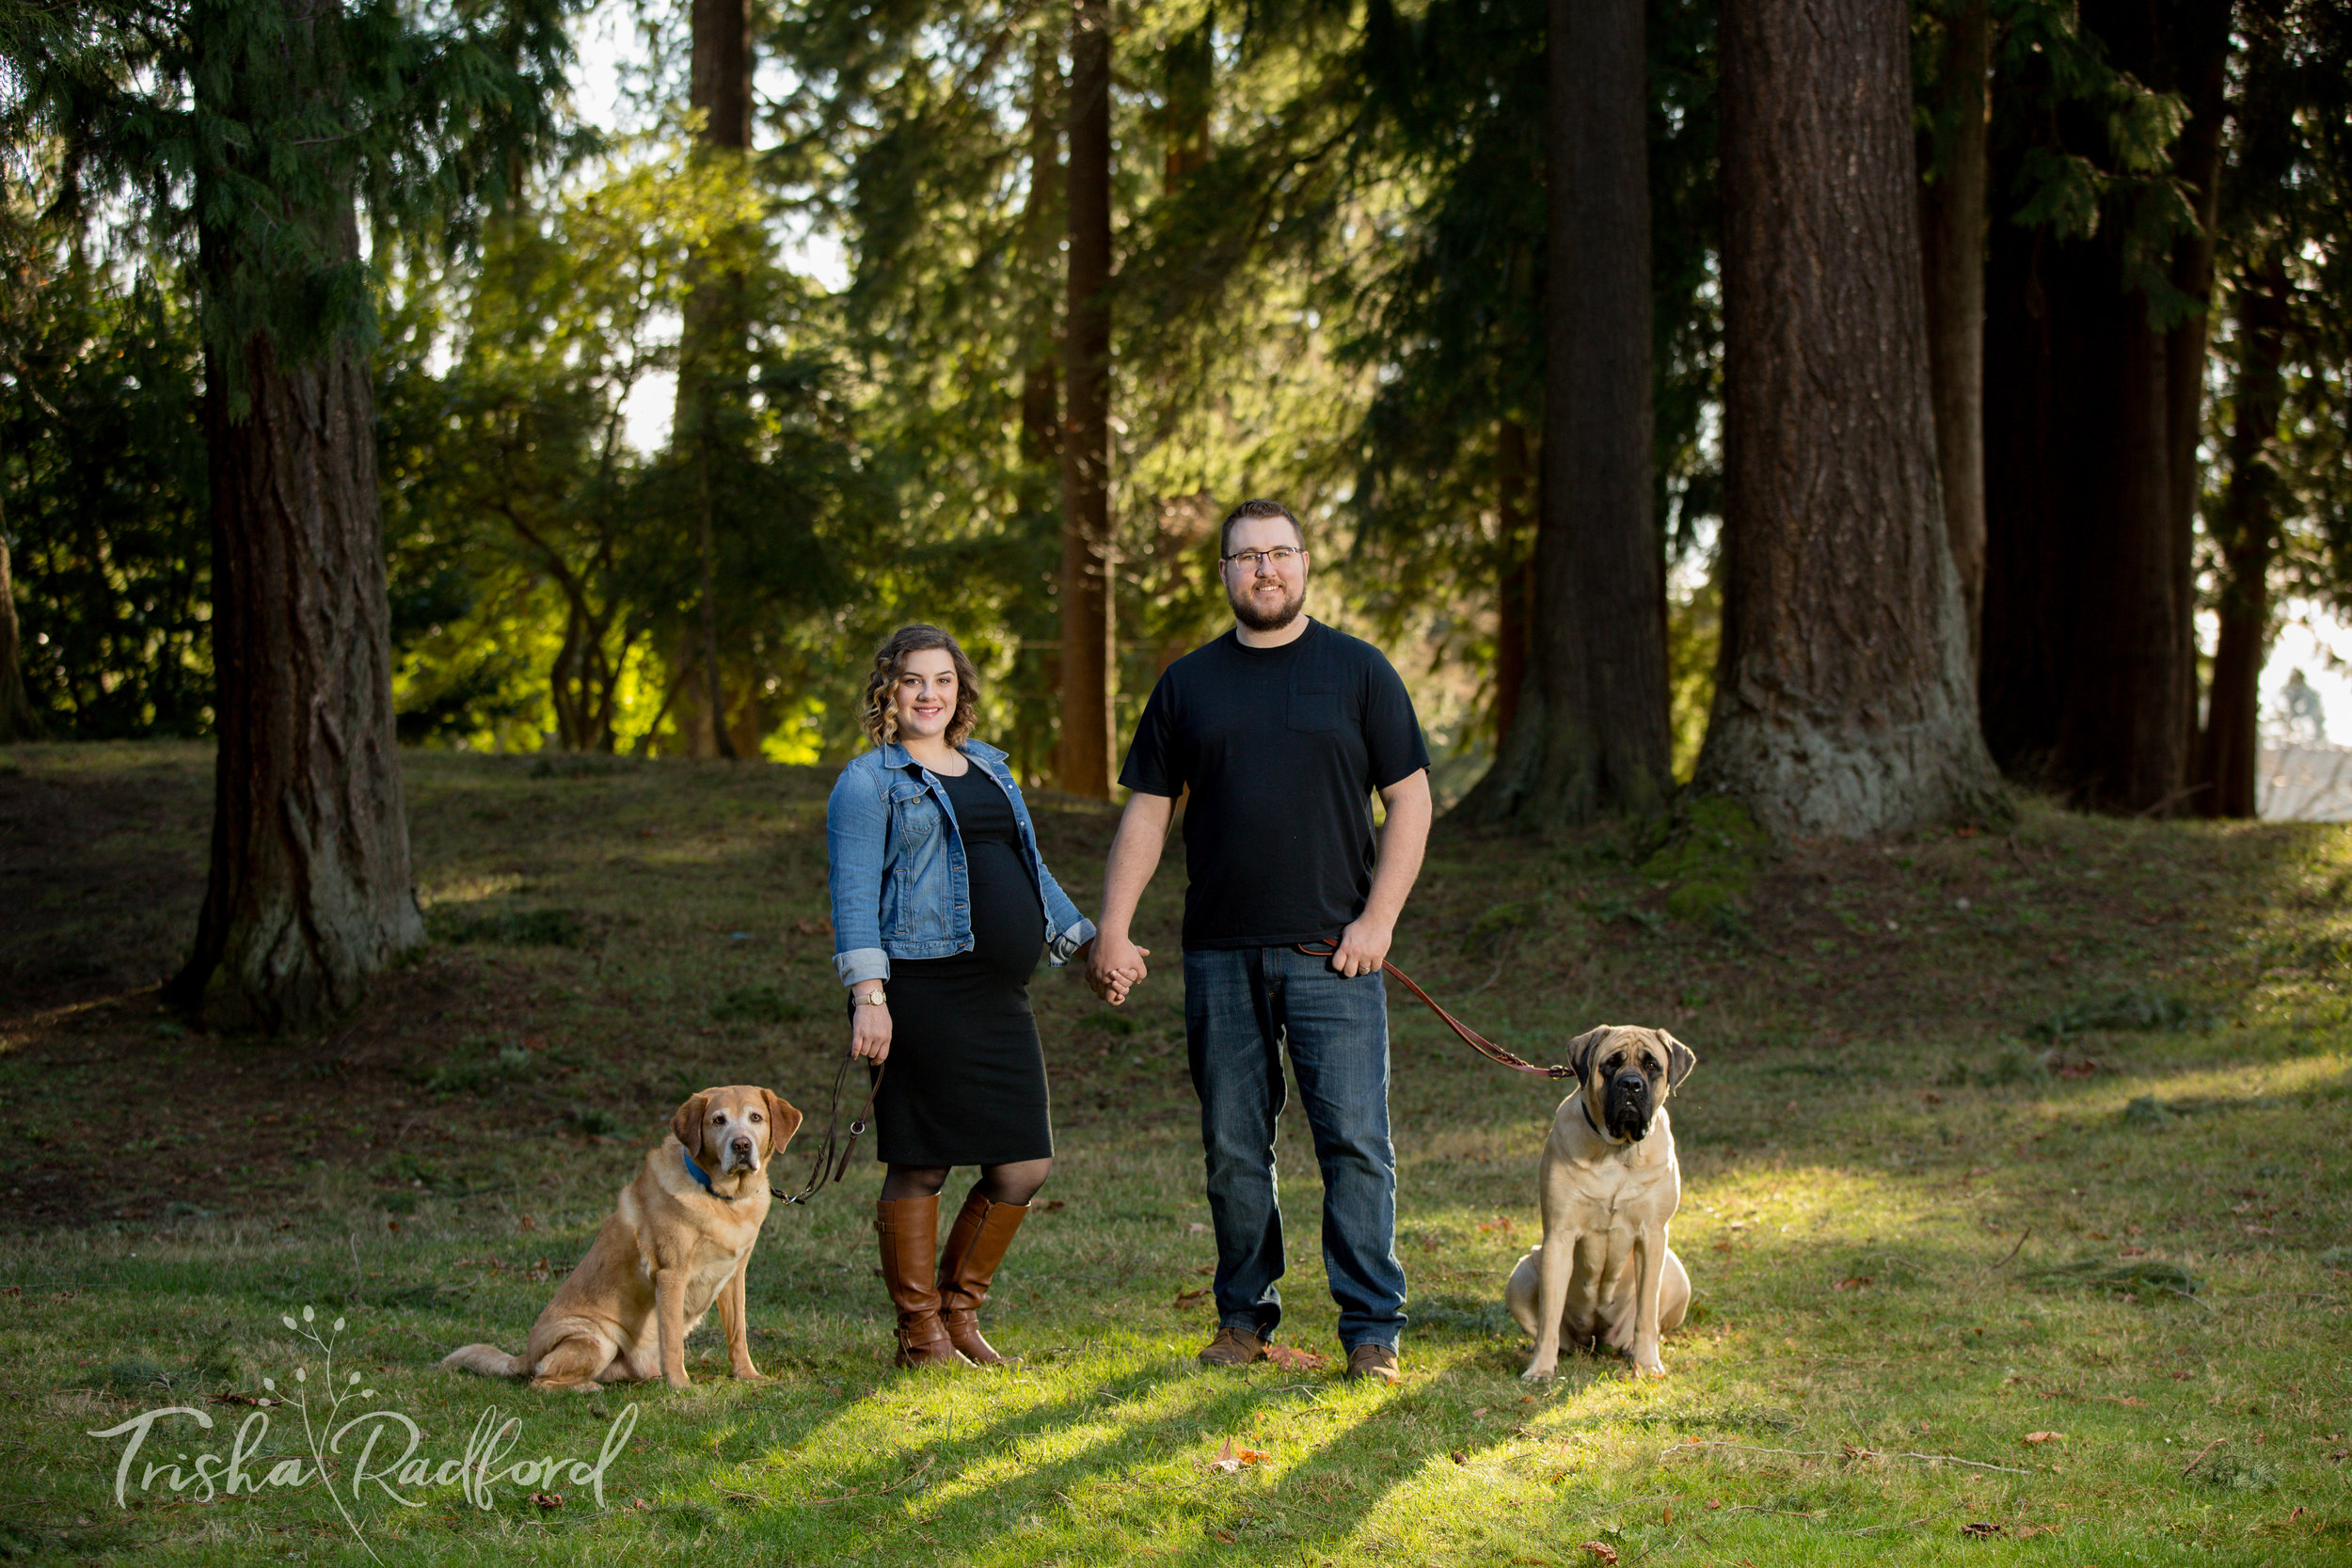 Maternity Photoshoot at Ferguson Park, Snohomish WA